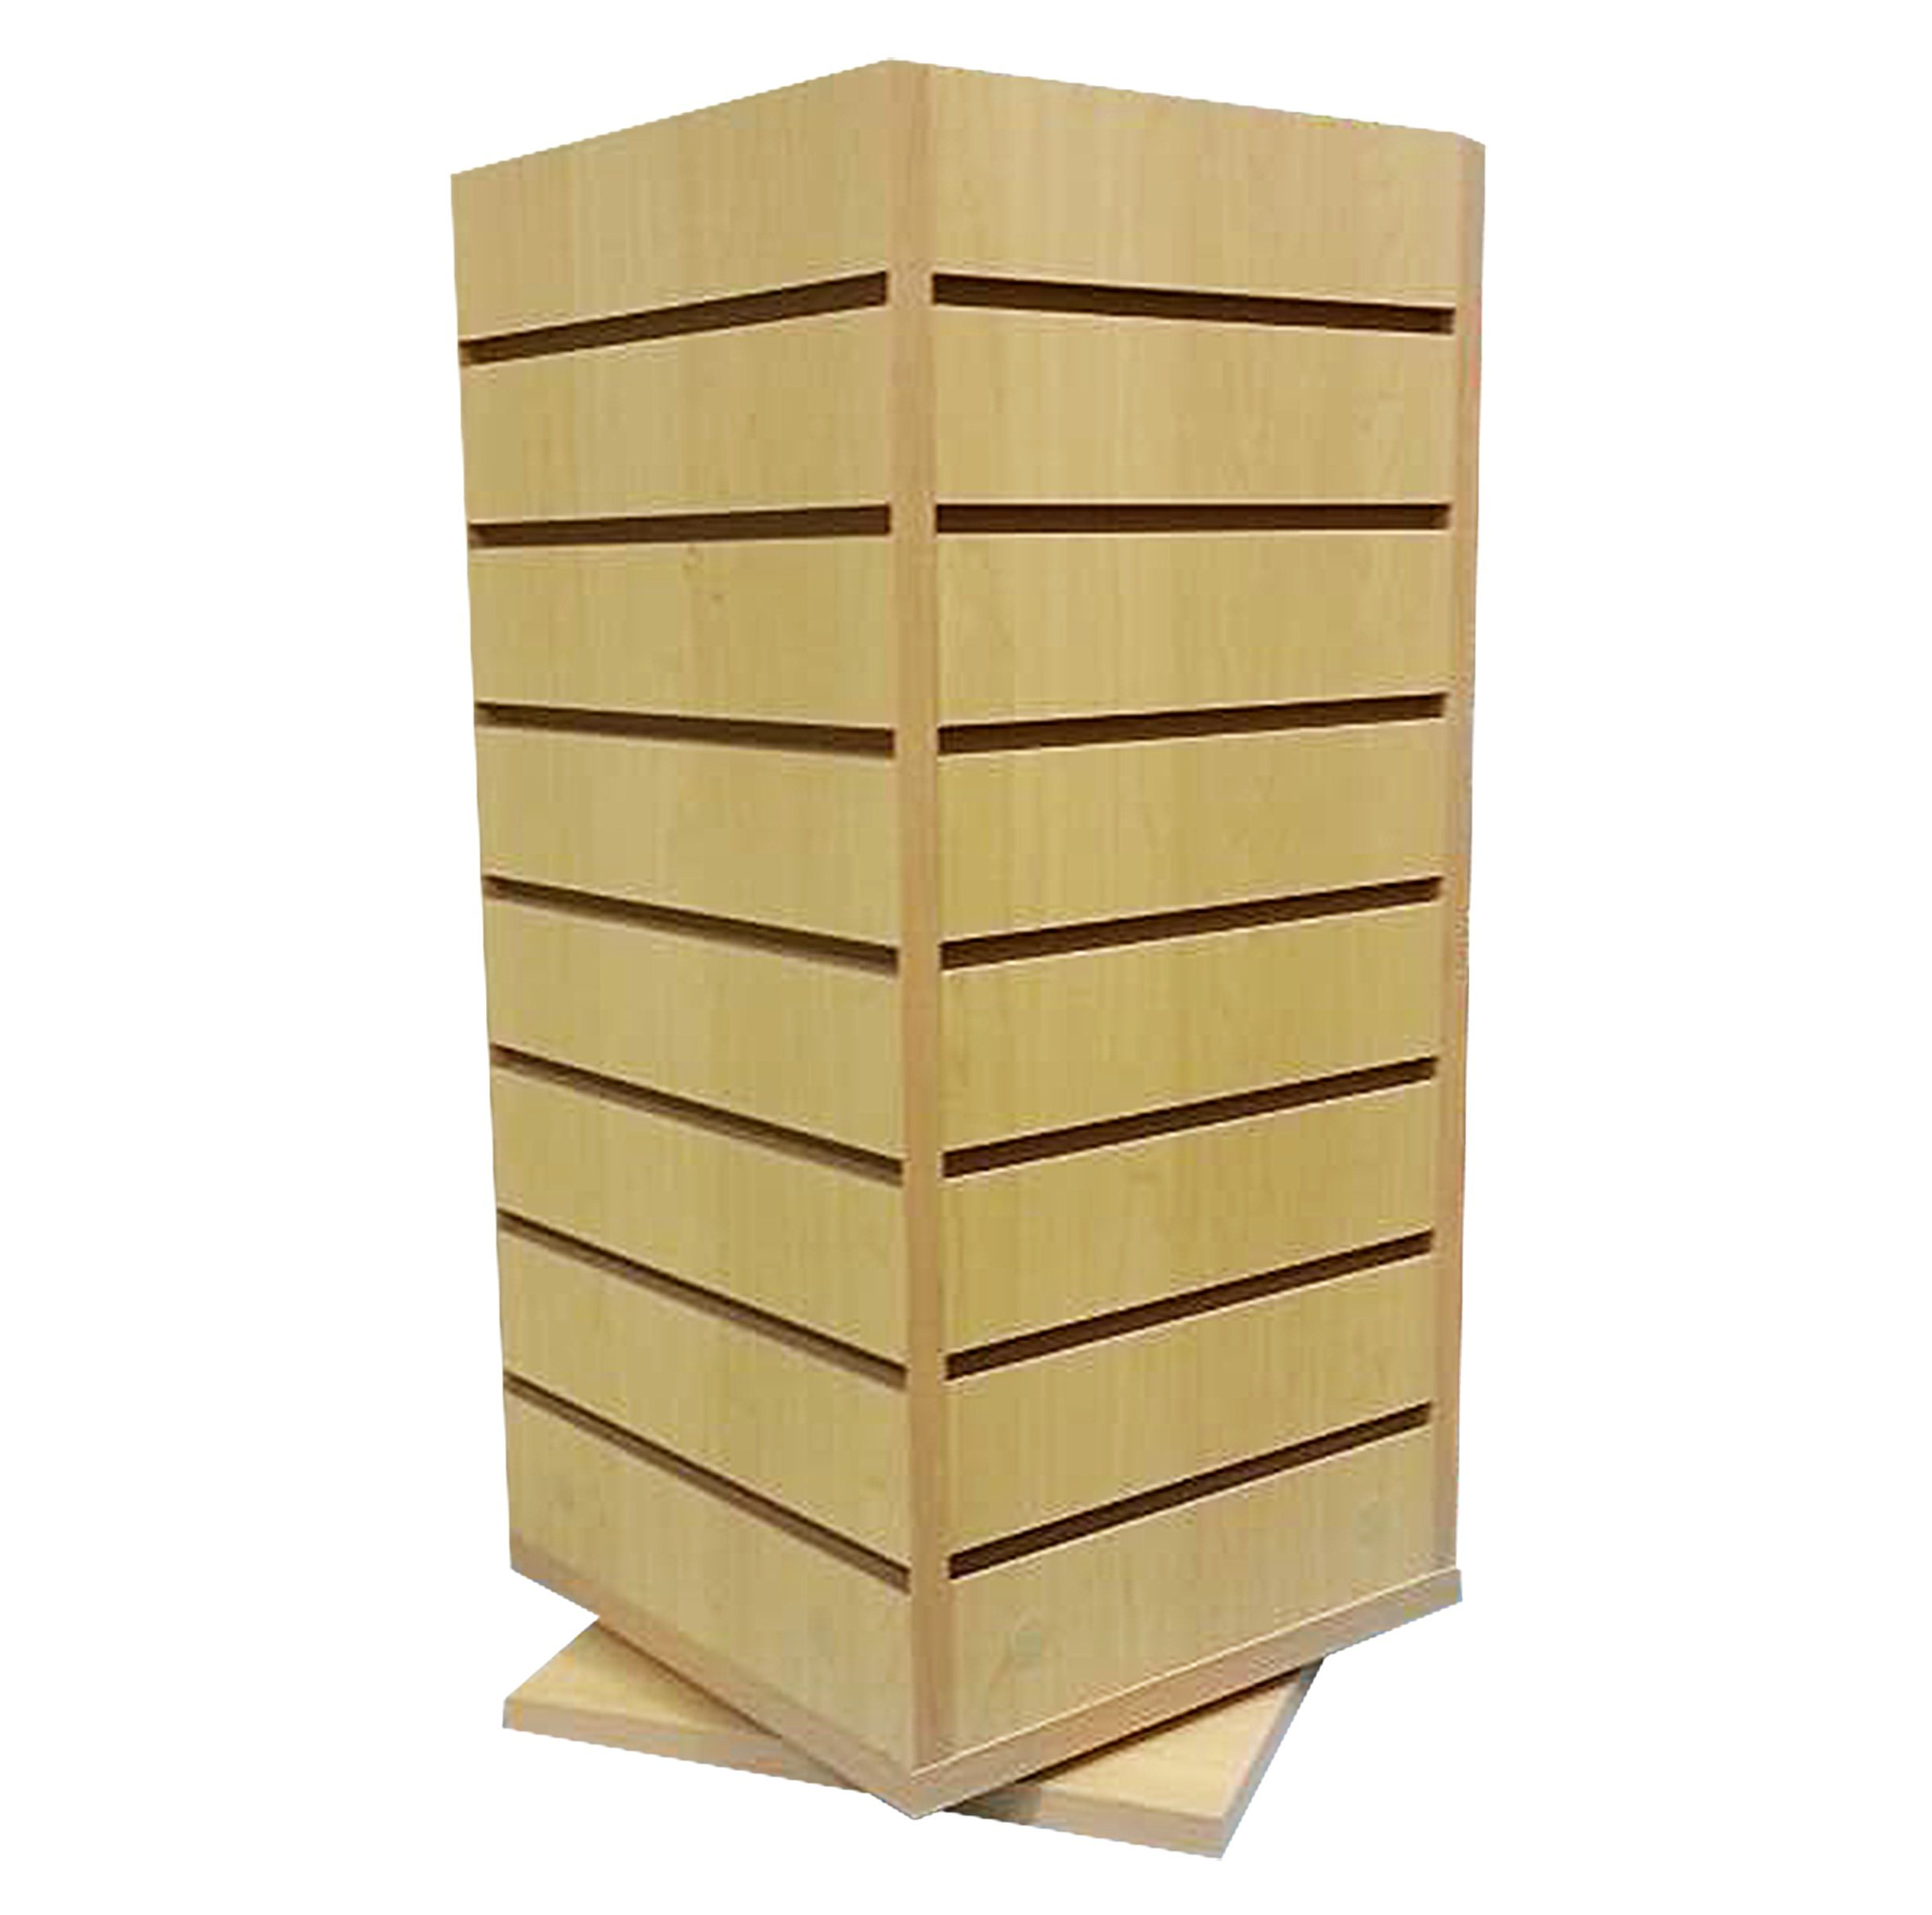 AMKO WD4S-CT Slatwall Merchandiser, 4-Sided Counterop Spinner, Maple